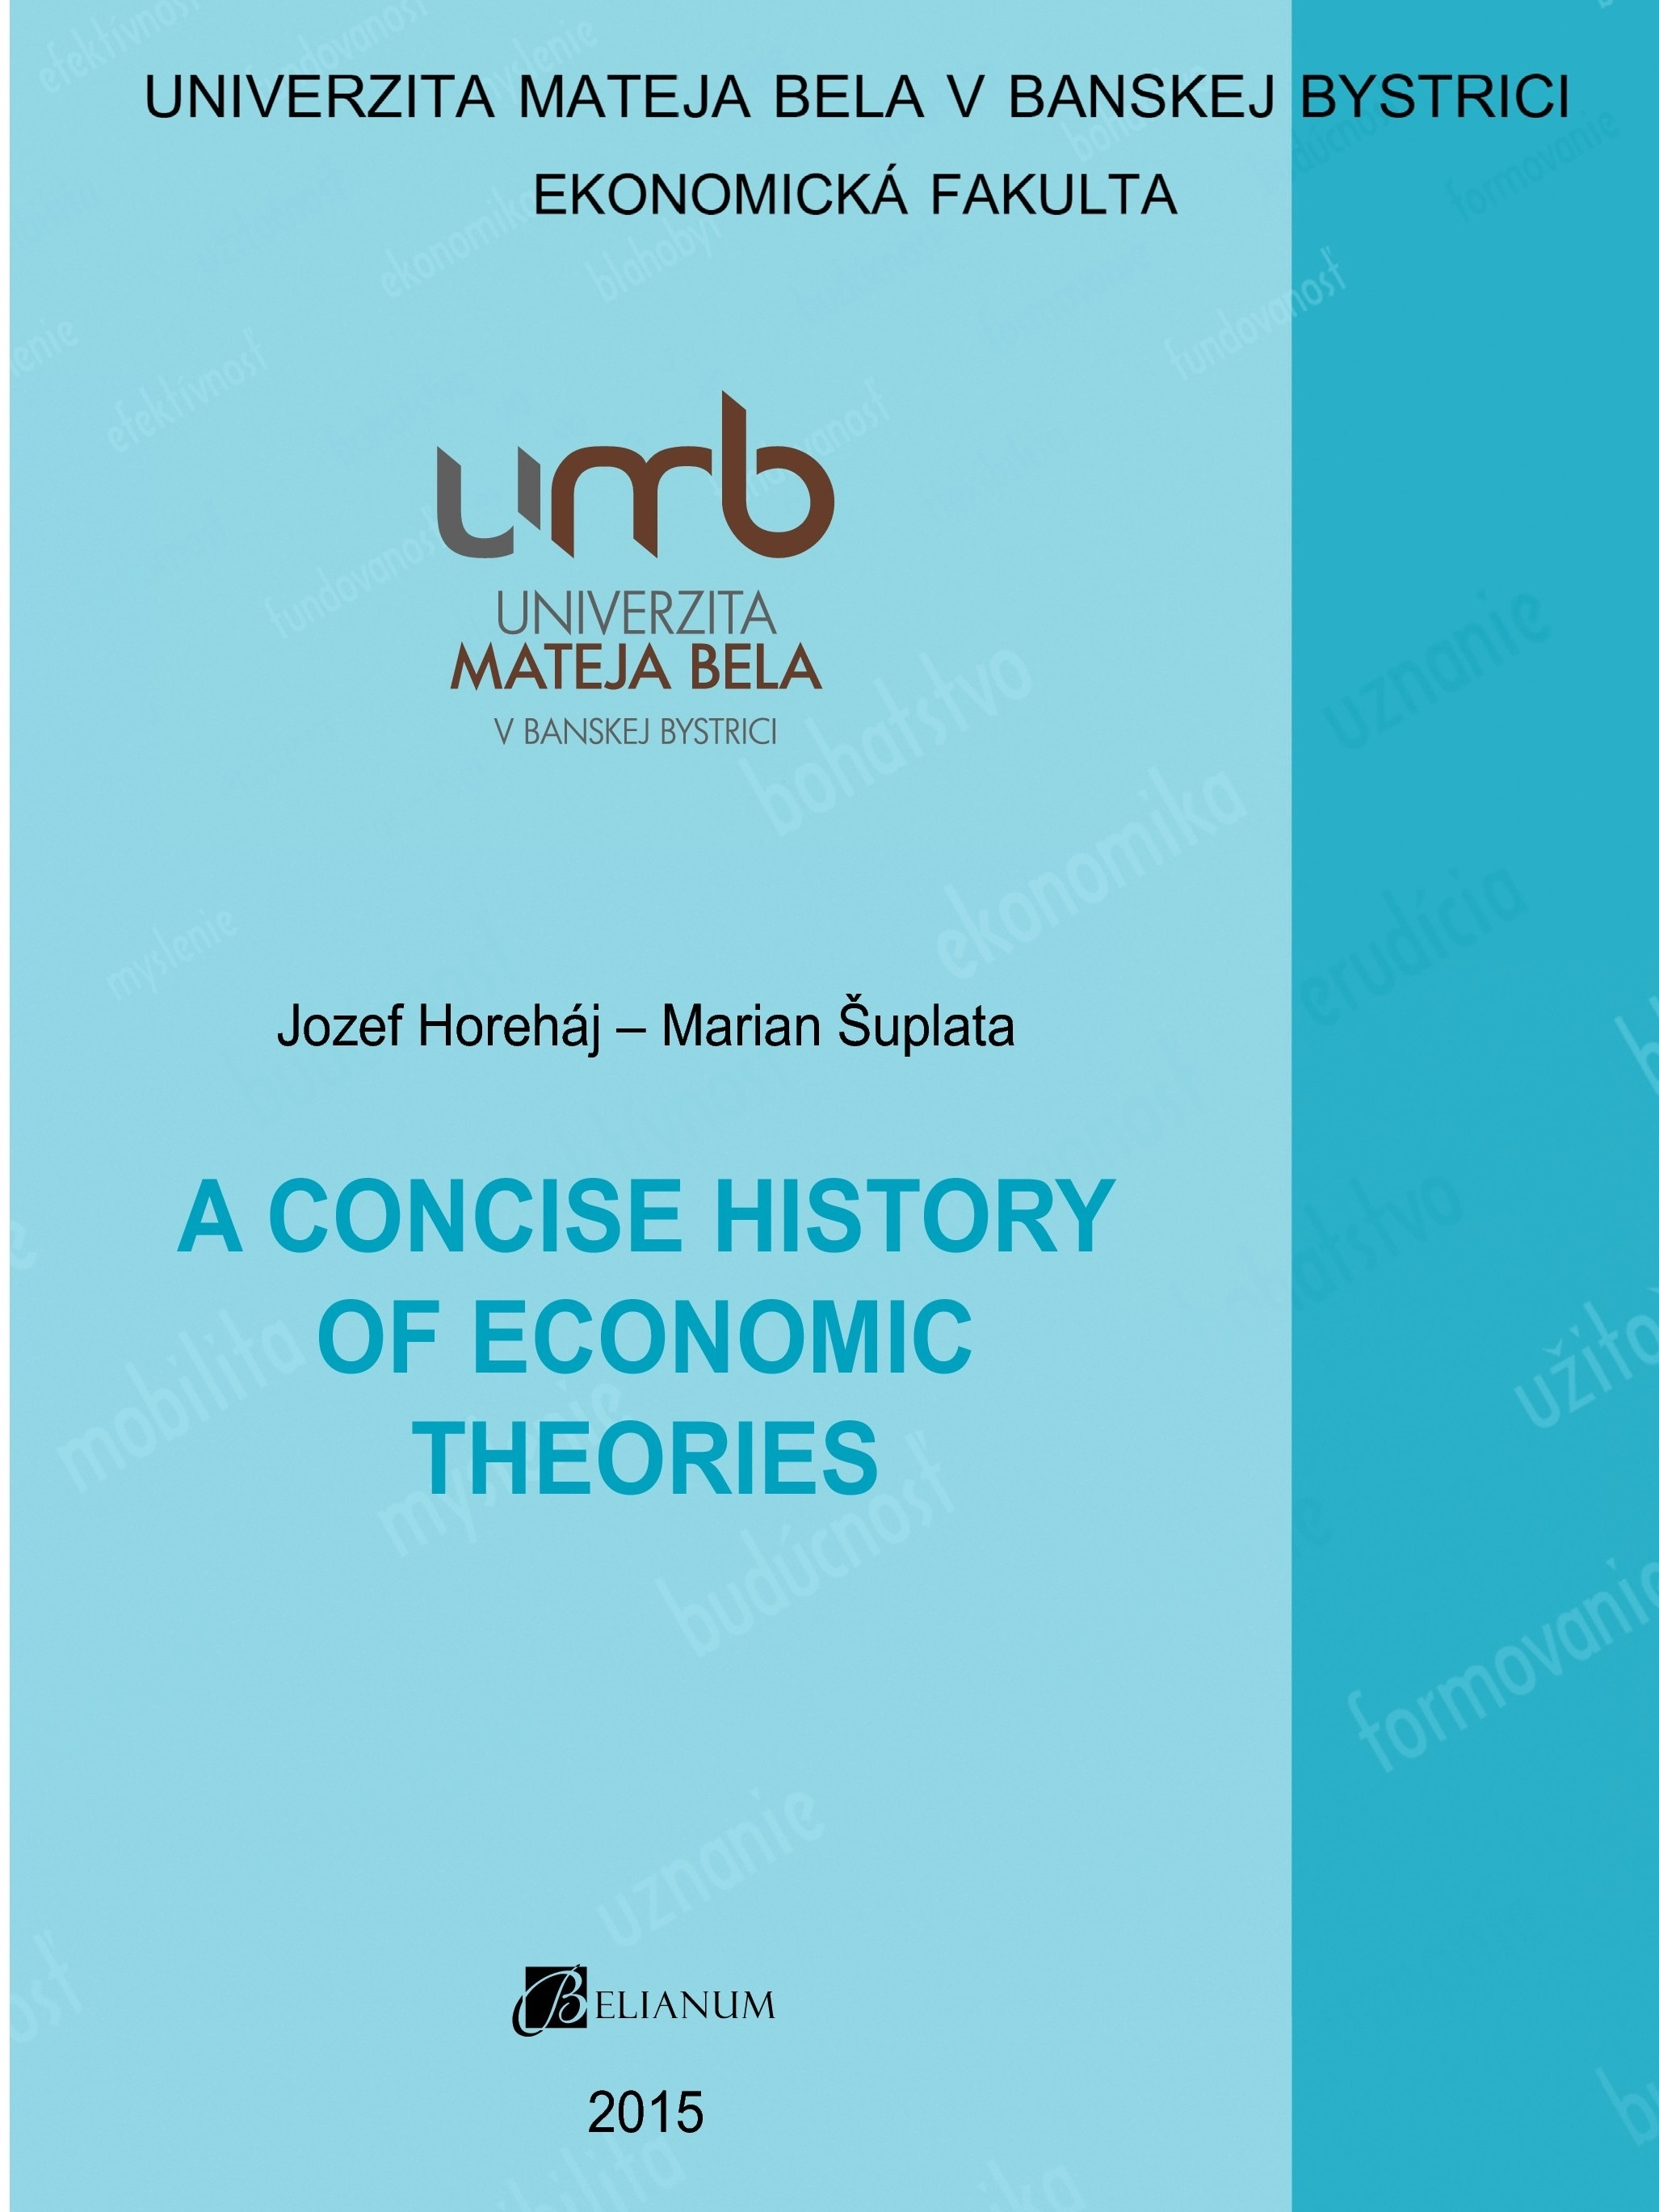 A Concise History of Economic Theories